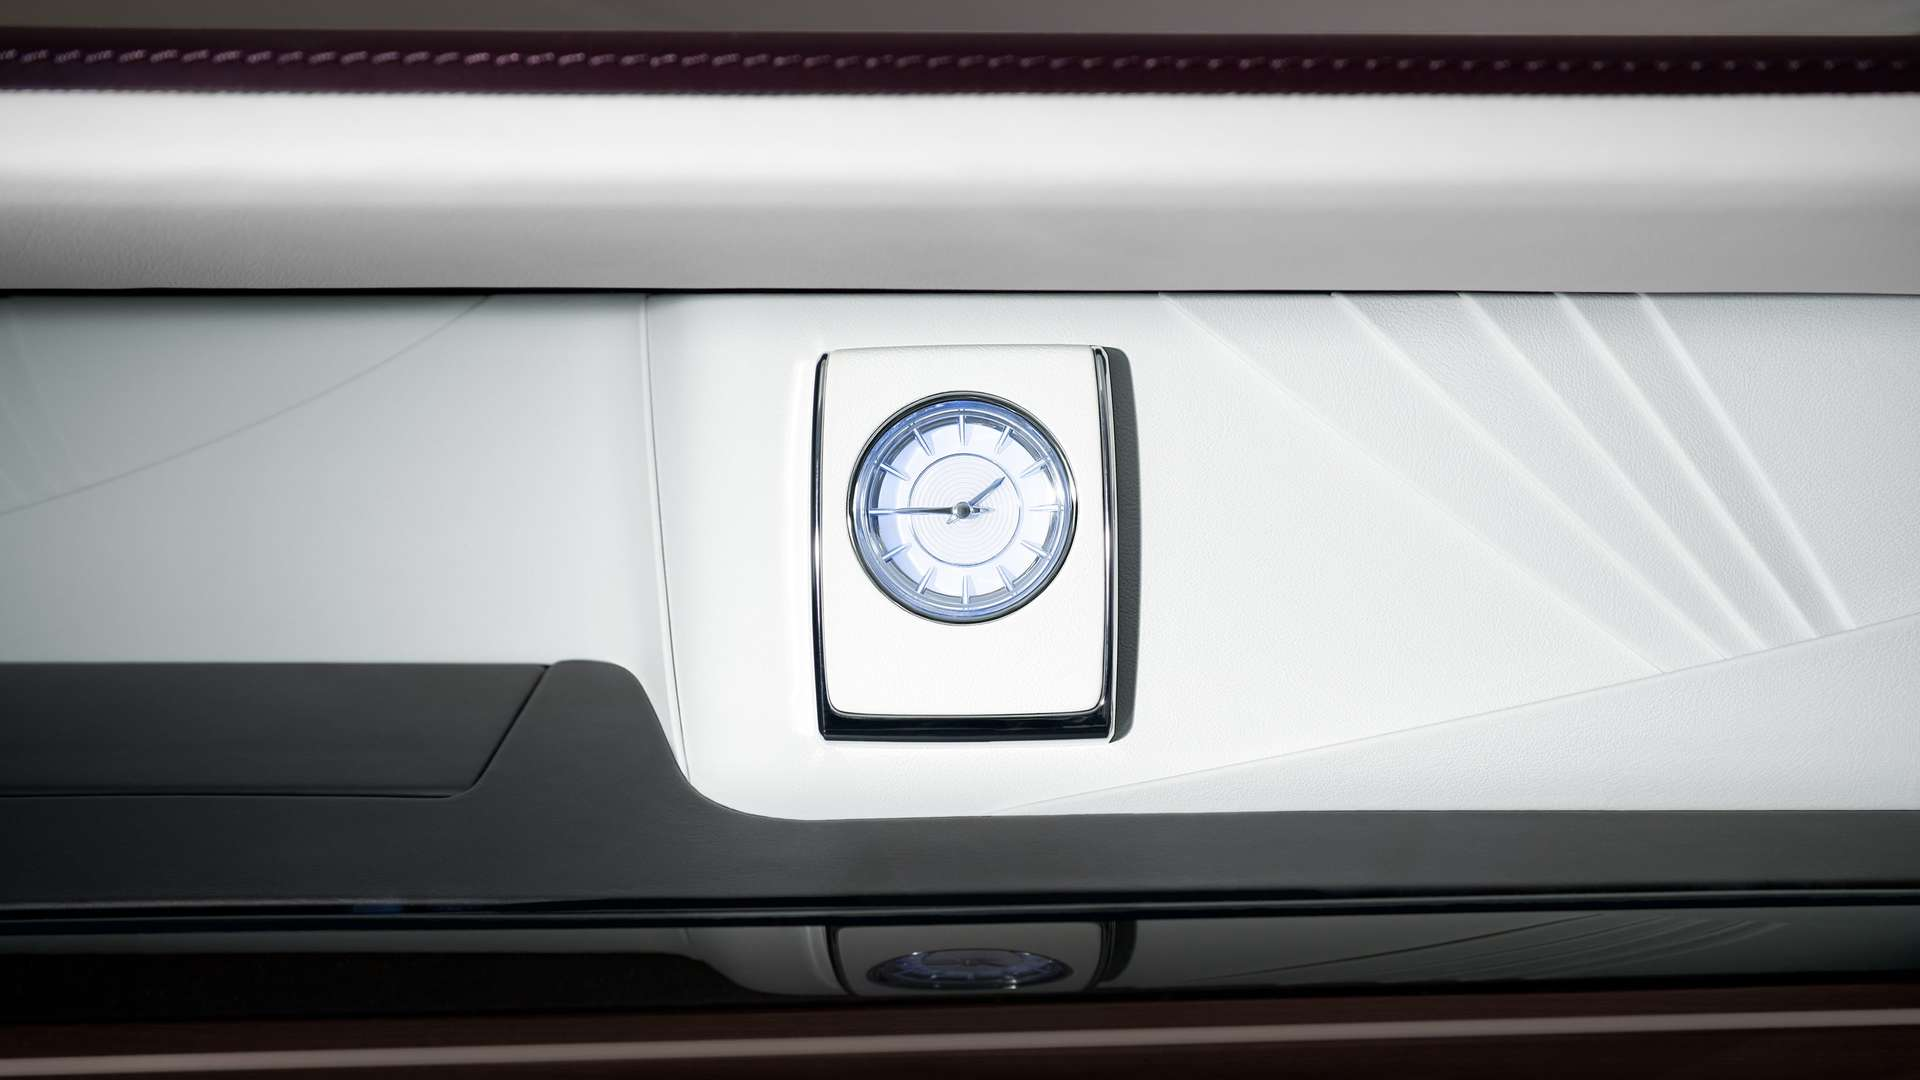 The clock inside a Rolls-Royce Phantom EWB model